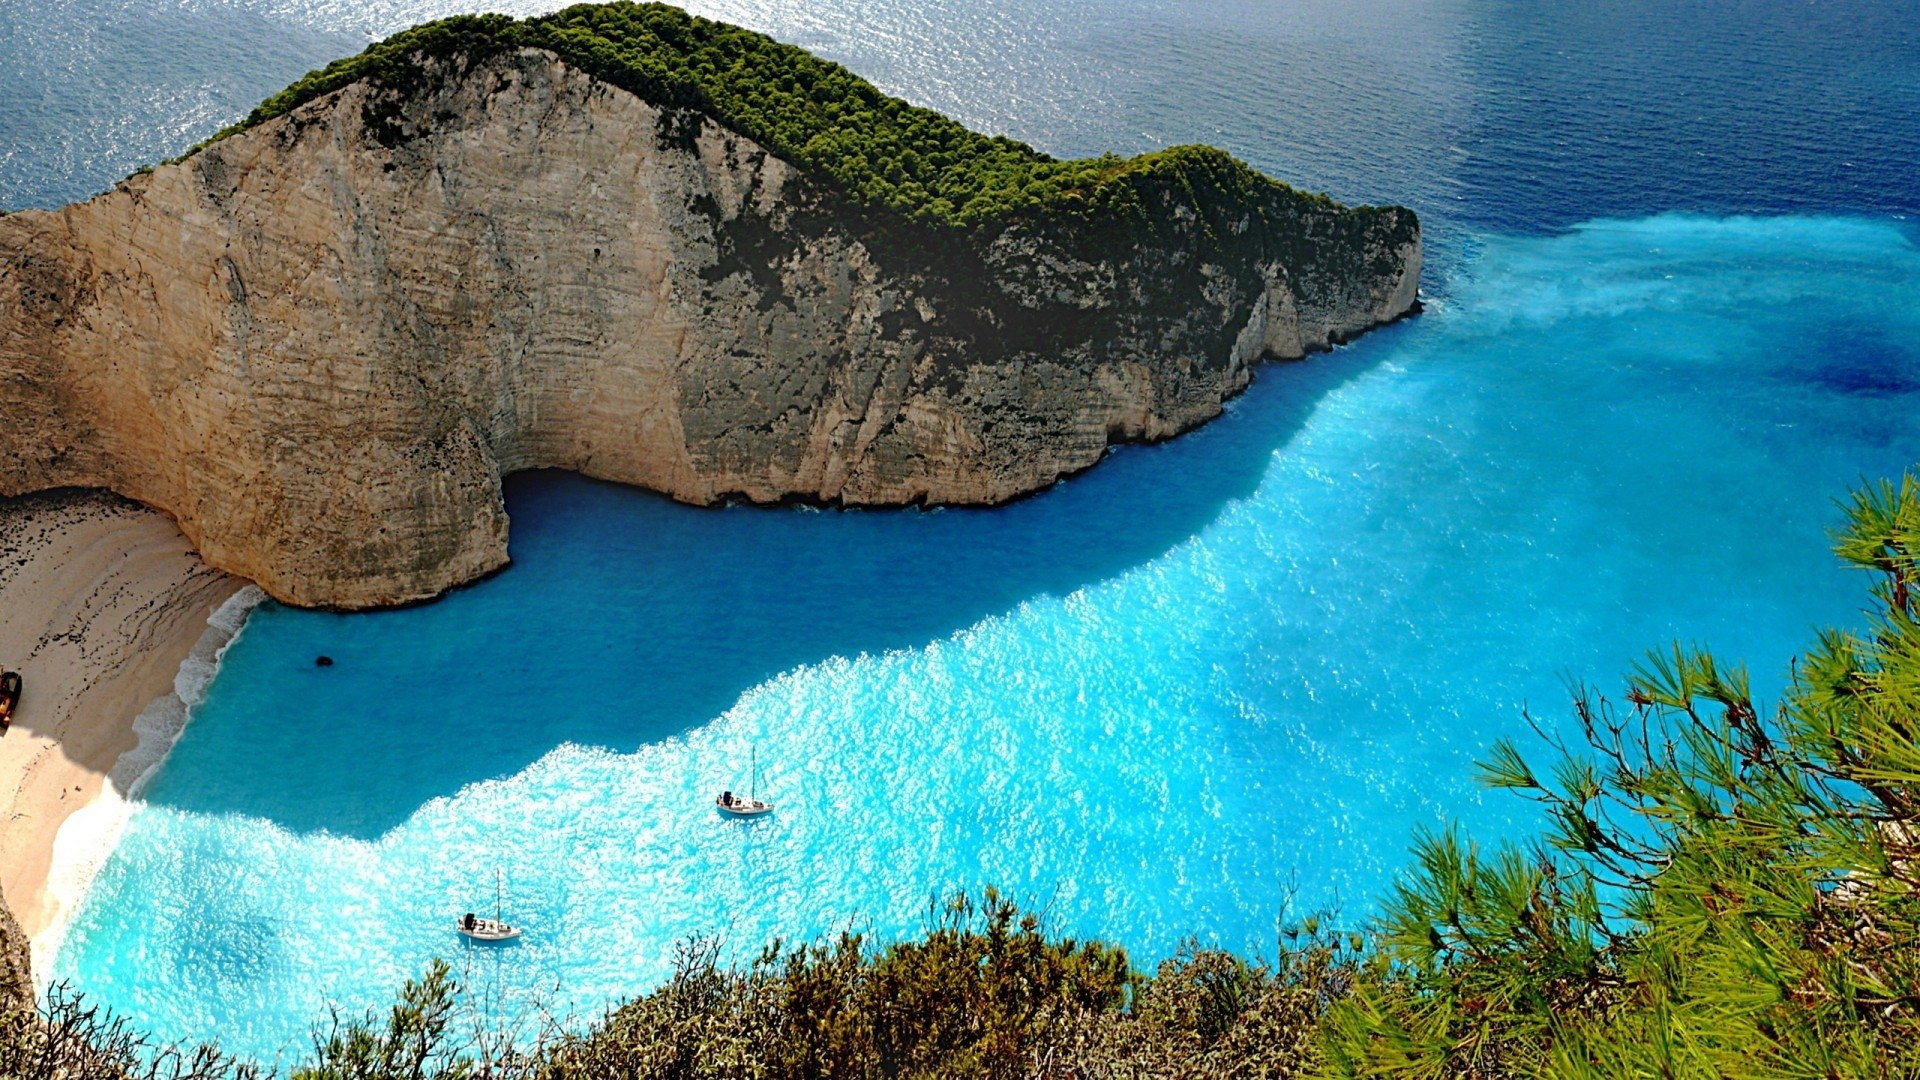 Res: 1920x1080, Oceans Lagoon Blissful Sea Nature Blue Hd Ocean Wallpaper For Iphone 6 -